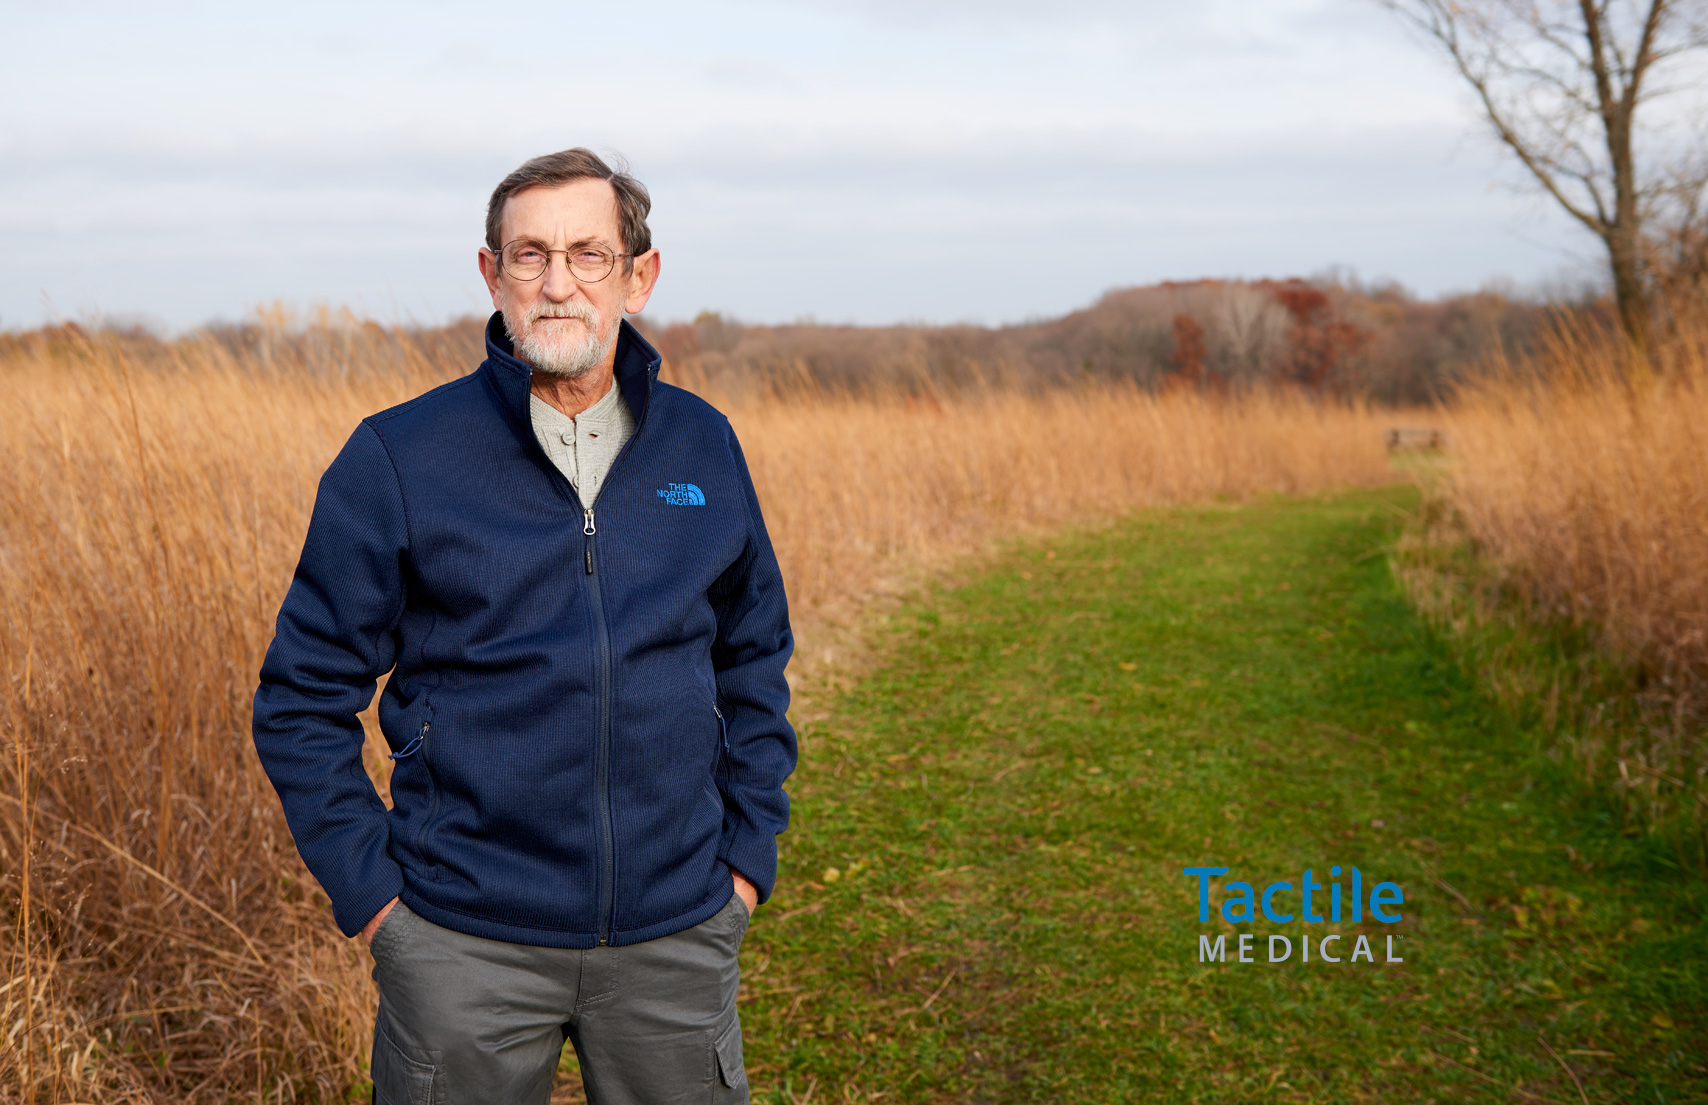 Older Bearded Man Outdoor Field Path Autumn Healthcare Tactile Medical